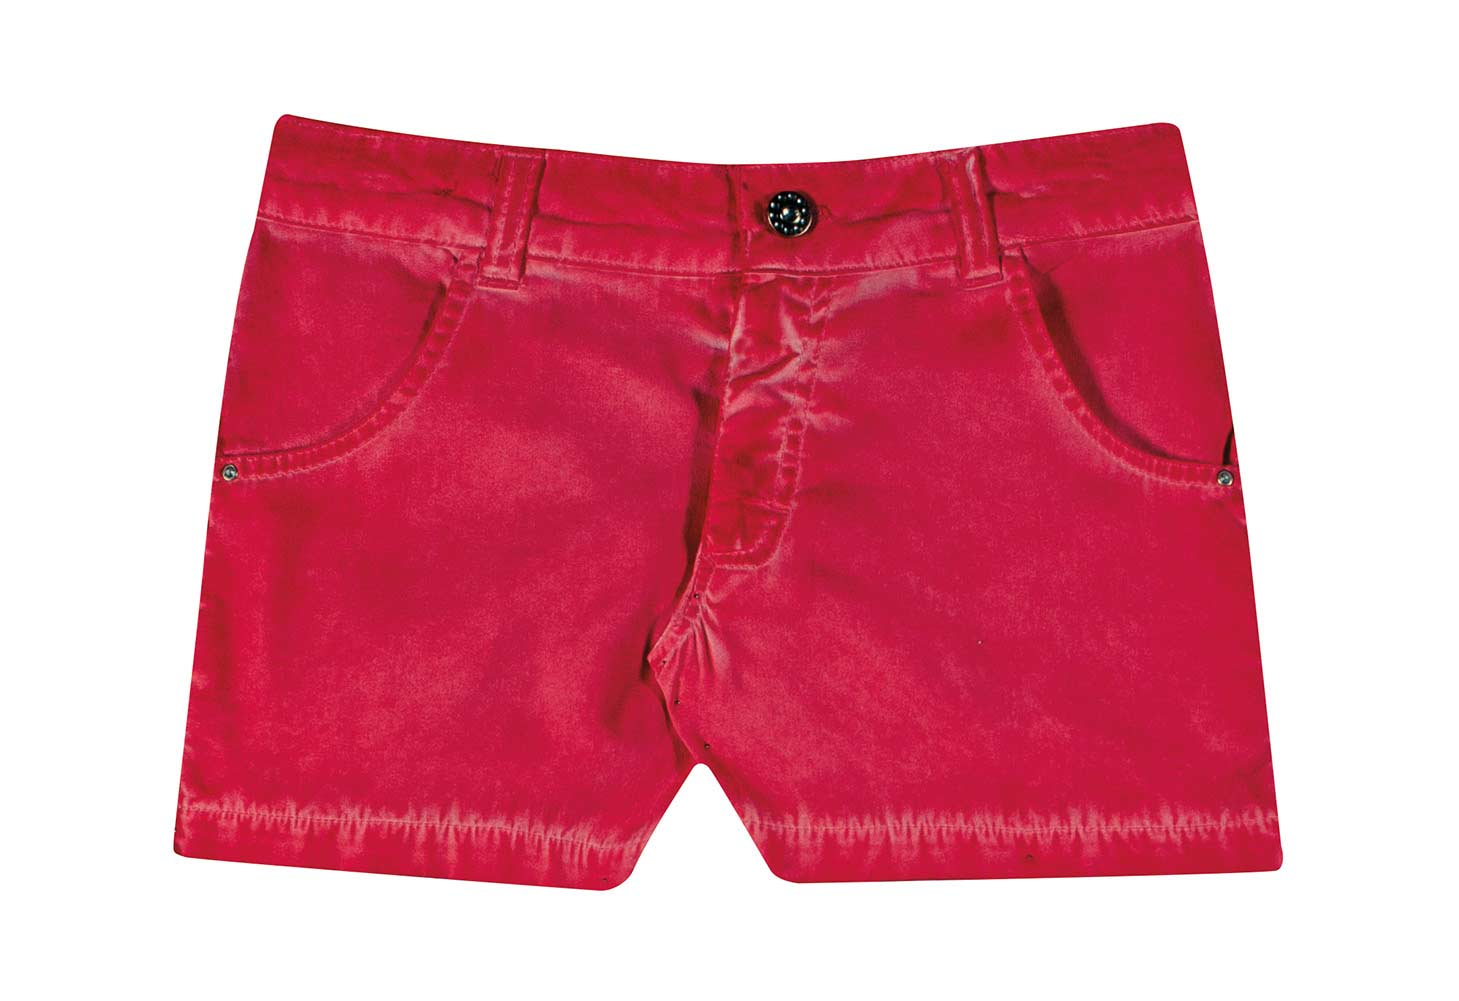 Abercrombie shorts for girls